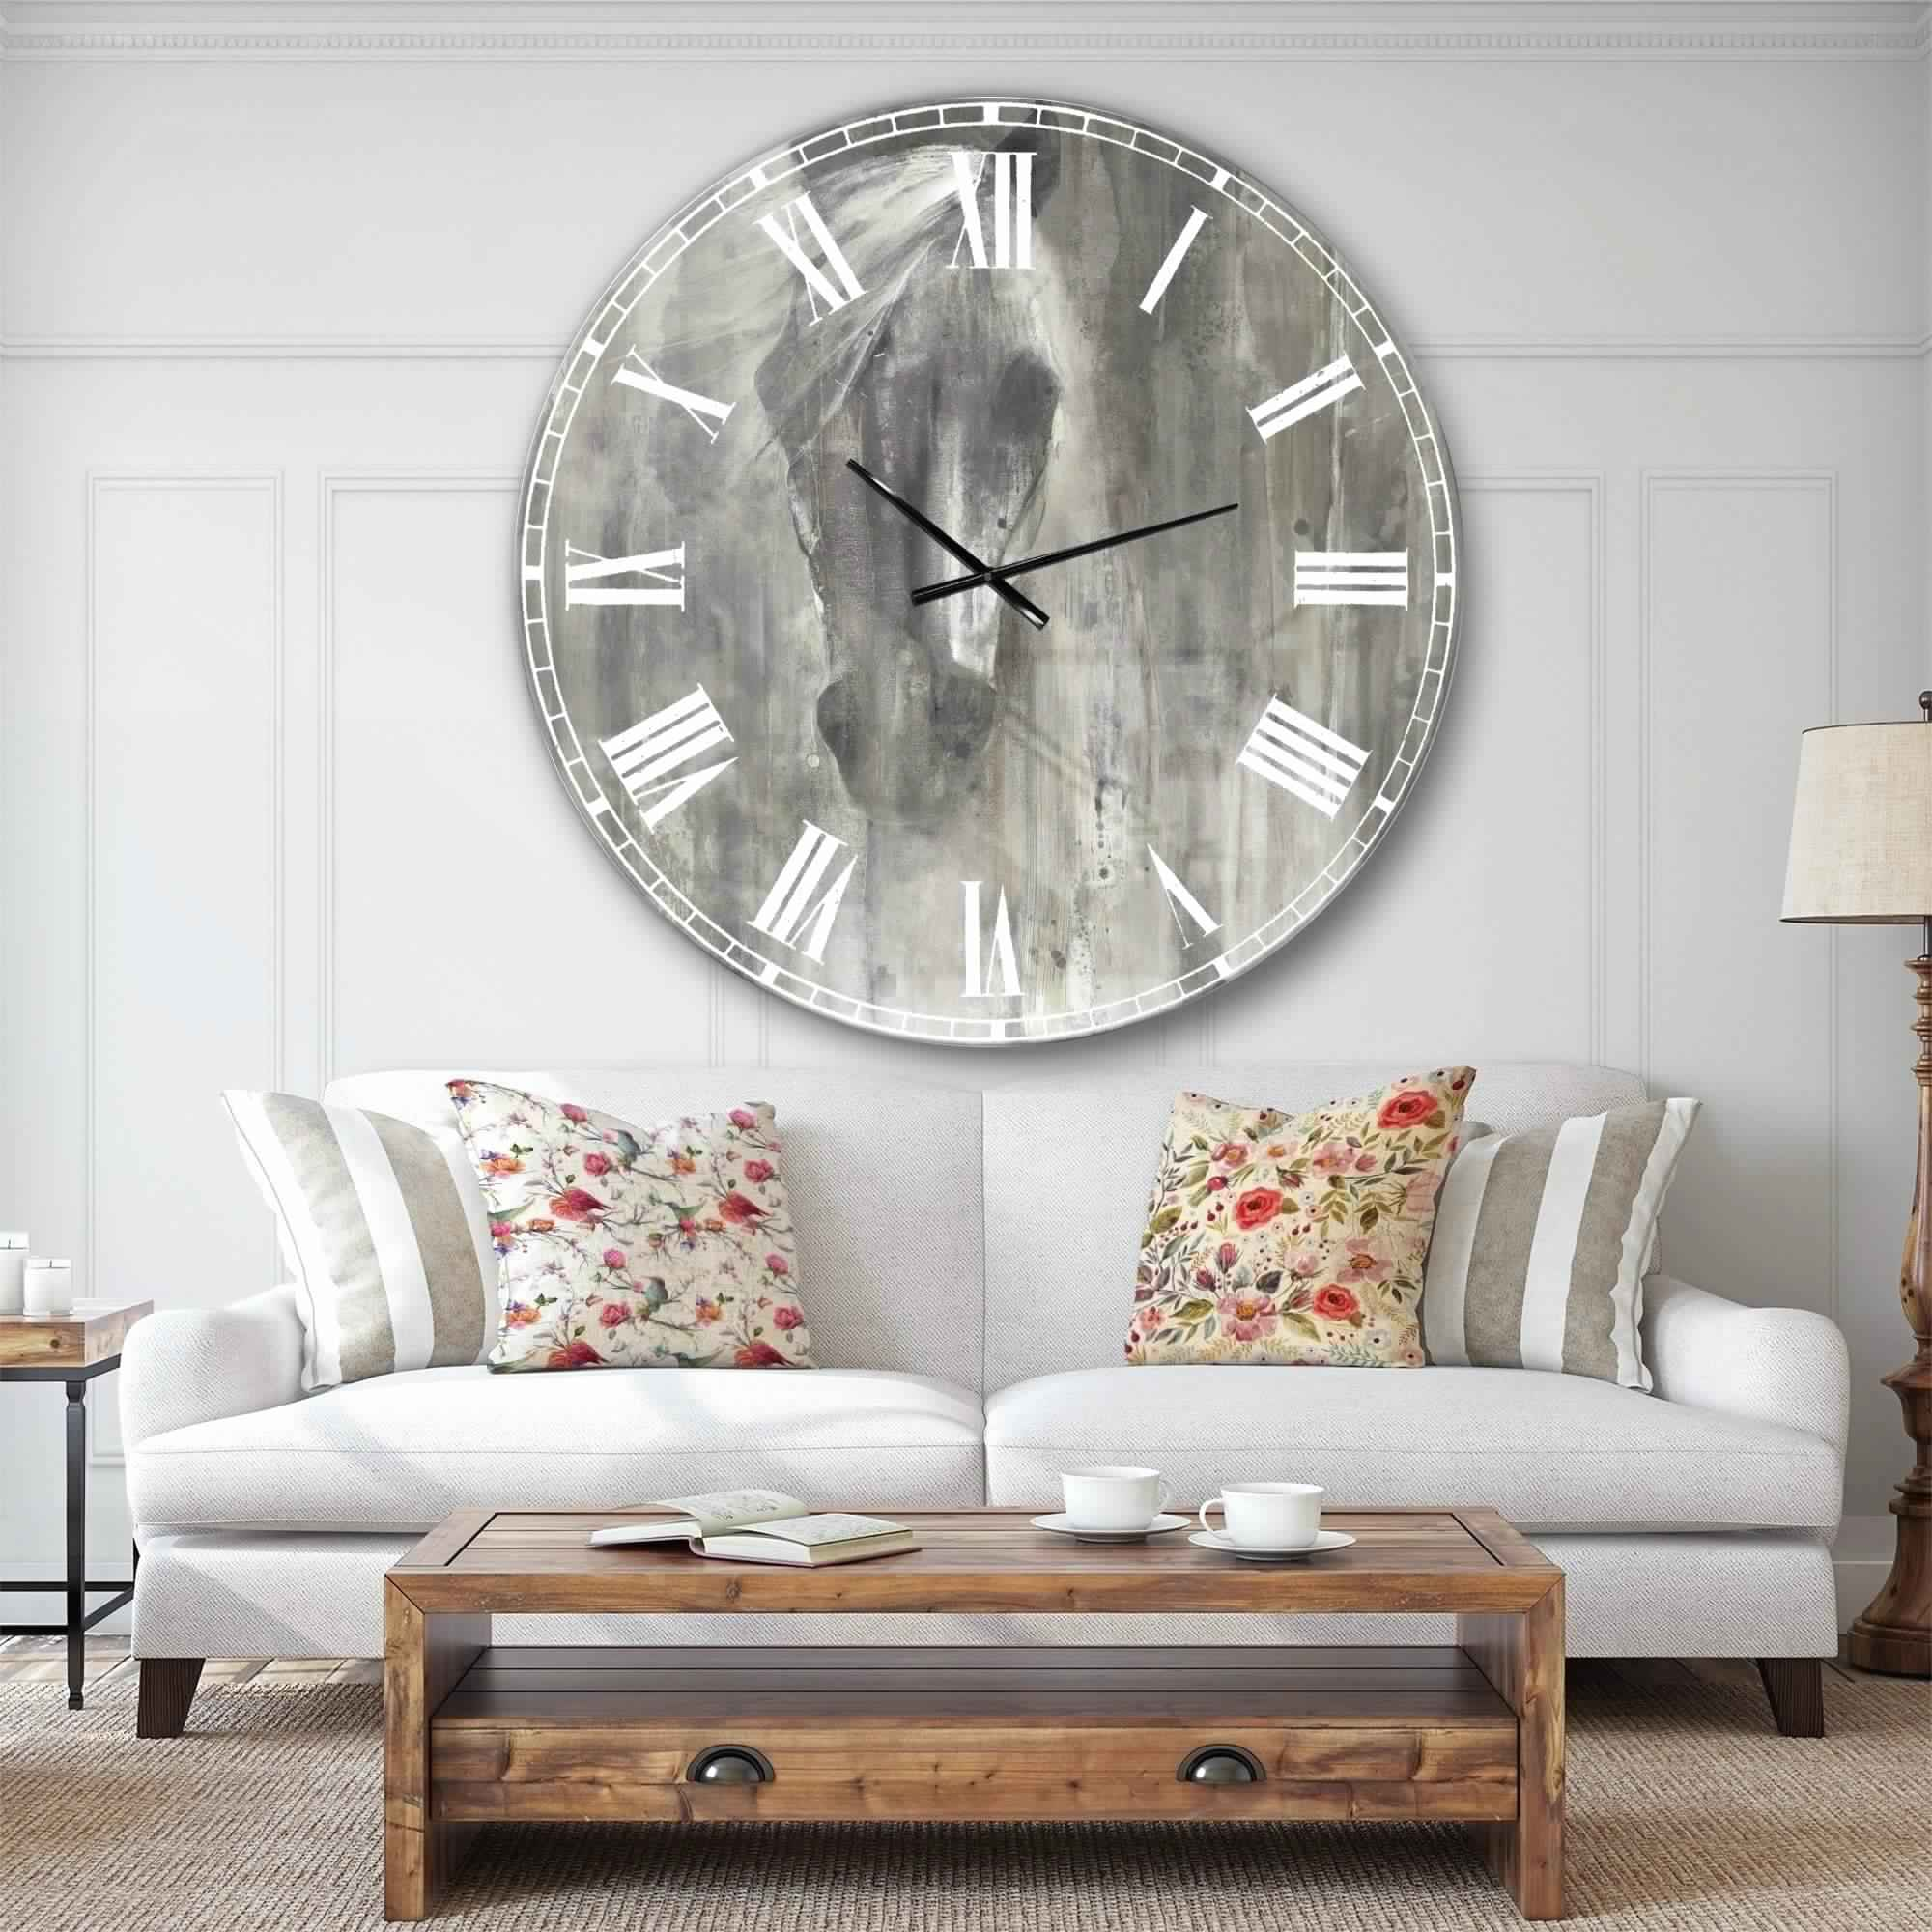 wall-clocks-living-room-buy-oversized-online-at-overstock-our-best-decorative-farmhouse-horse-modern-large